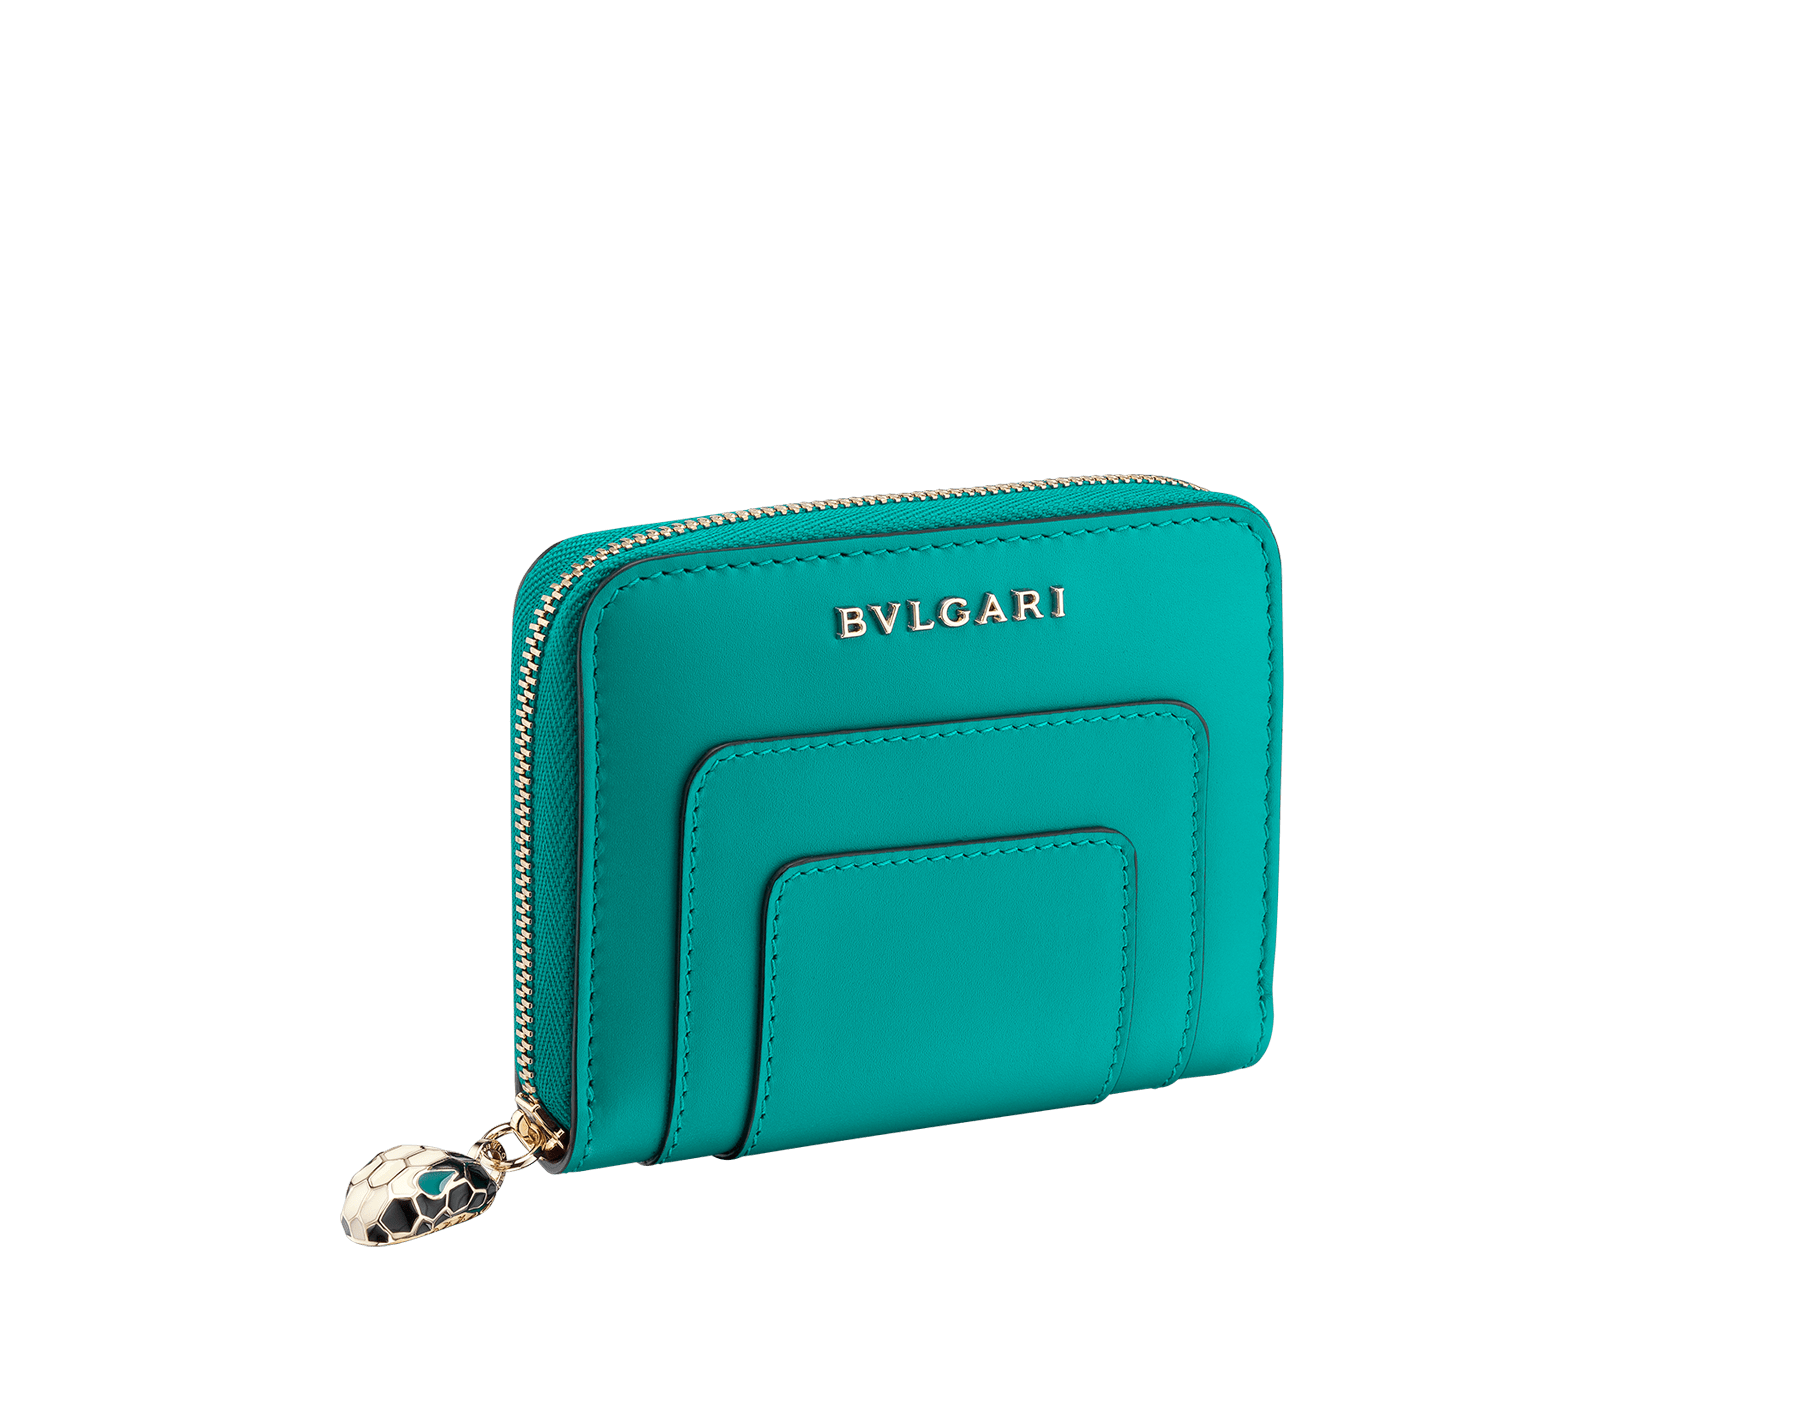 Serpenti Forever mini zipped wallet in tropical tourquoise and deep jade calf leather. Iconic snakehead zip puller in black and white enamel, with green enamel eyes. 288010 image 1